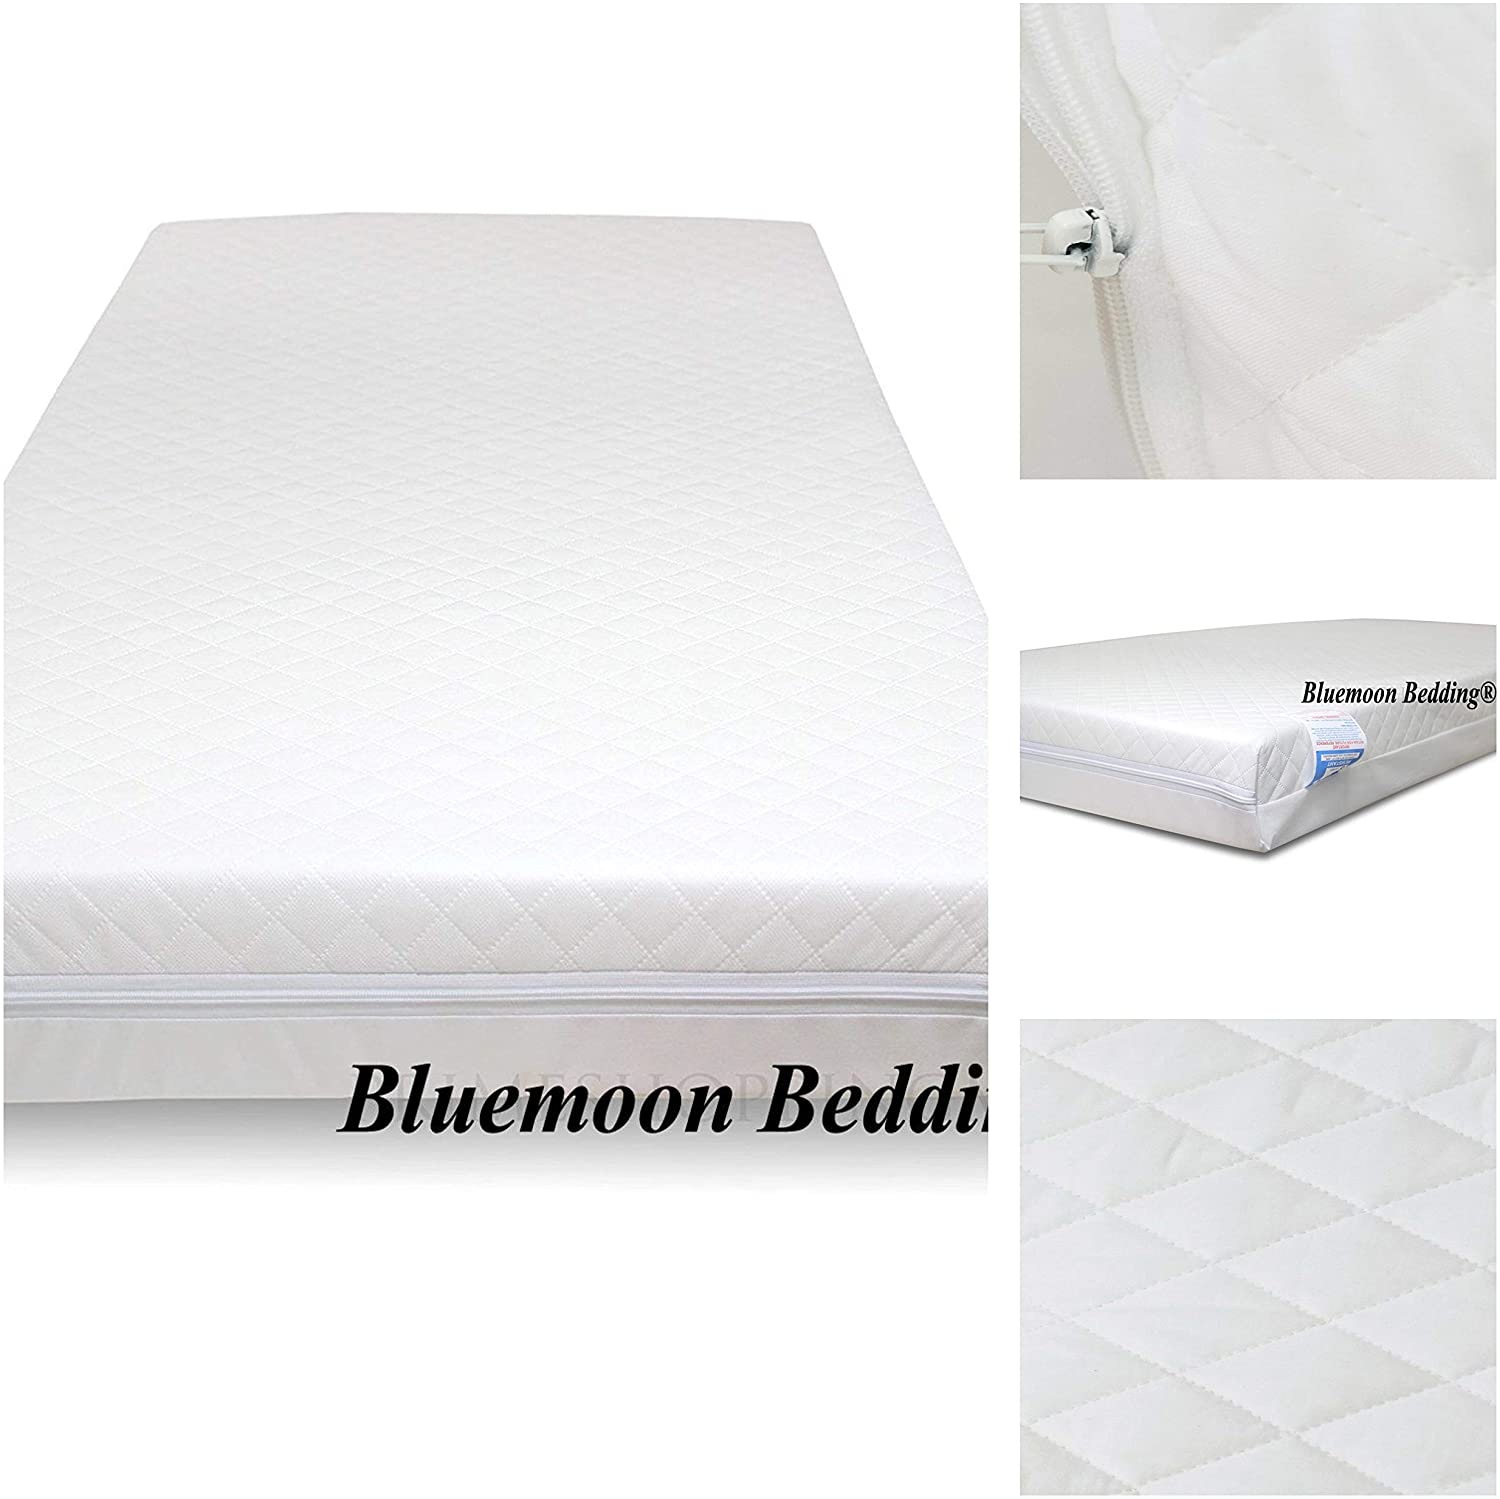 Redkite /& Mamas /& Papas 95 x 65 x 7 cm New Thick Travel Cot Mattress for Graco